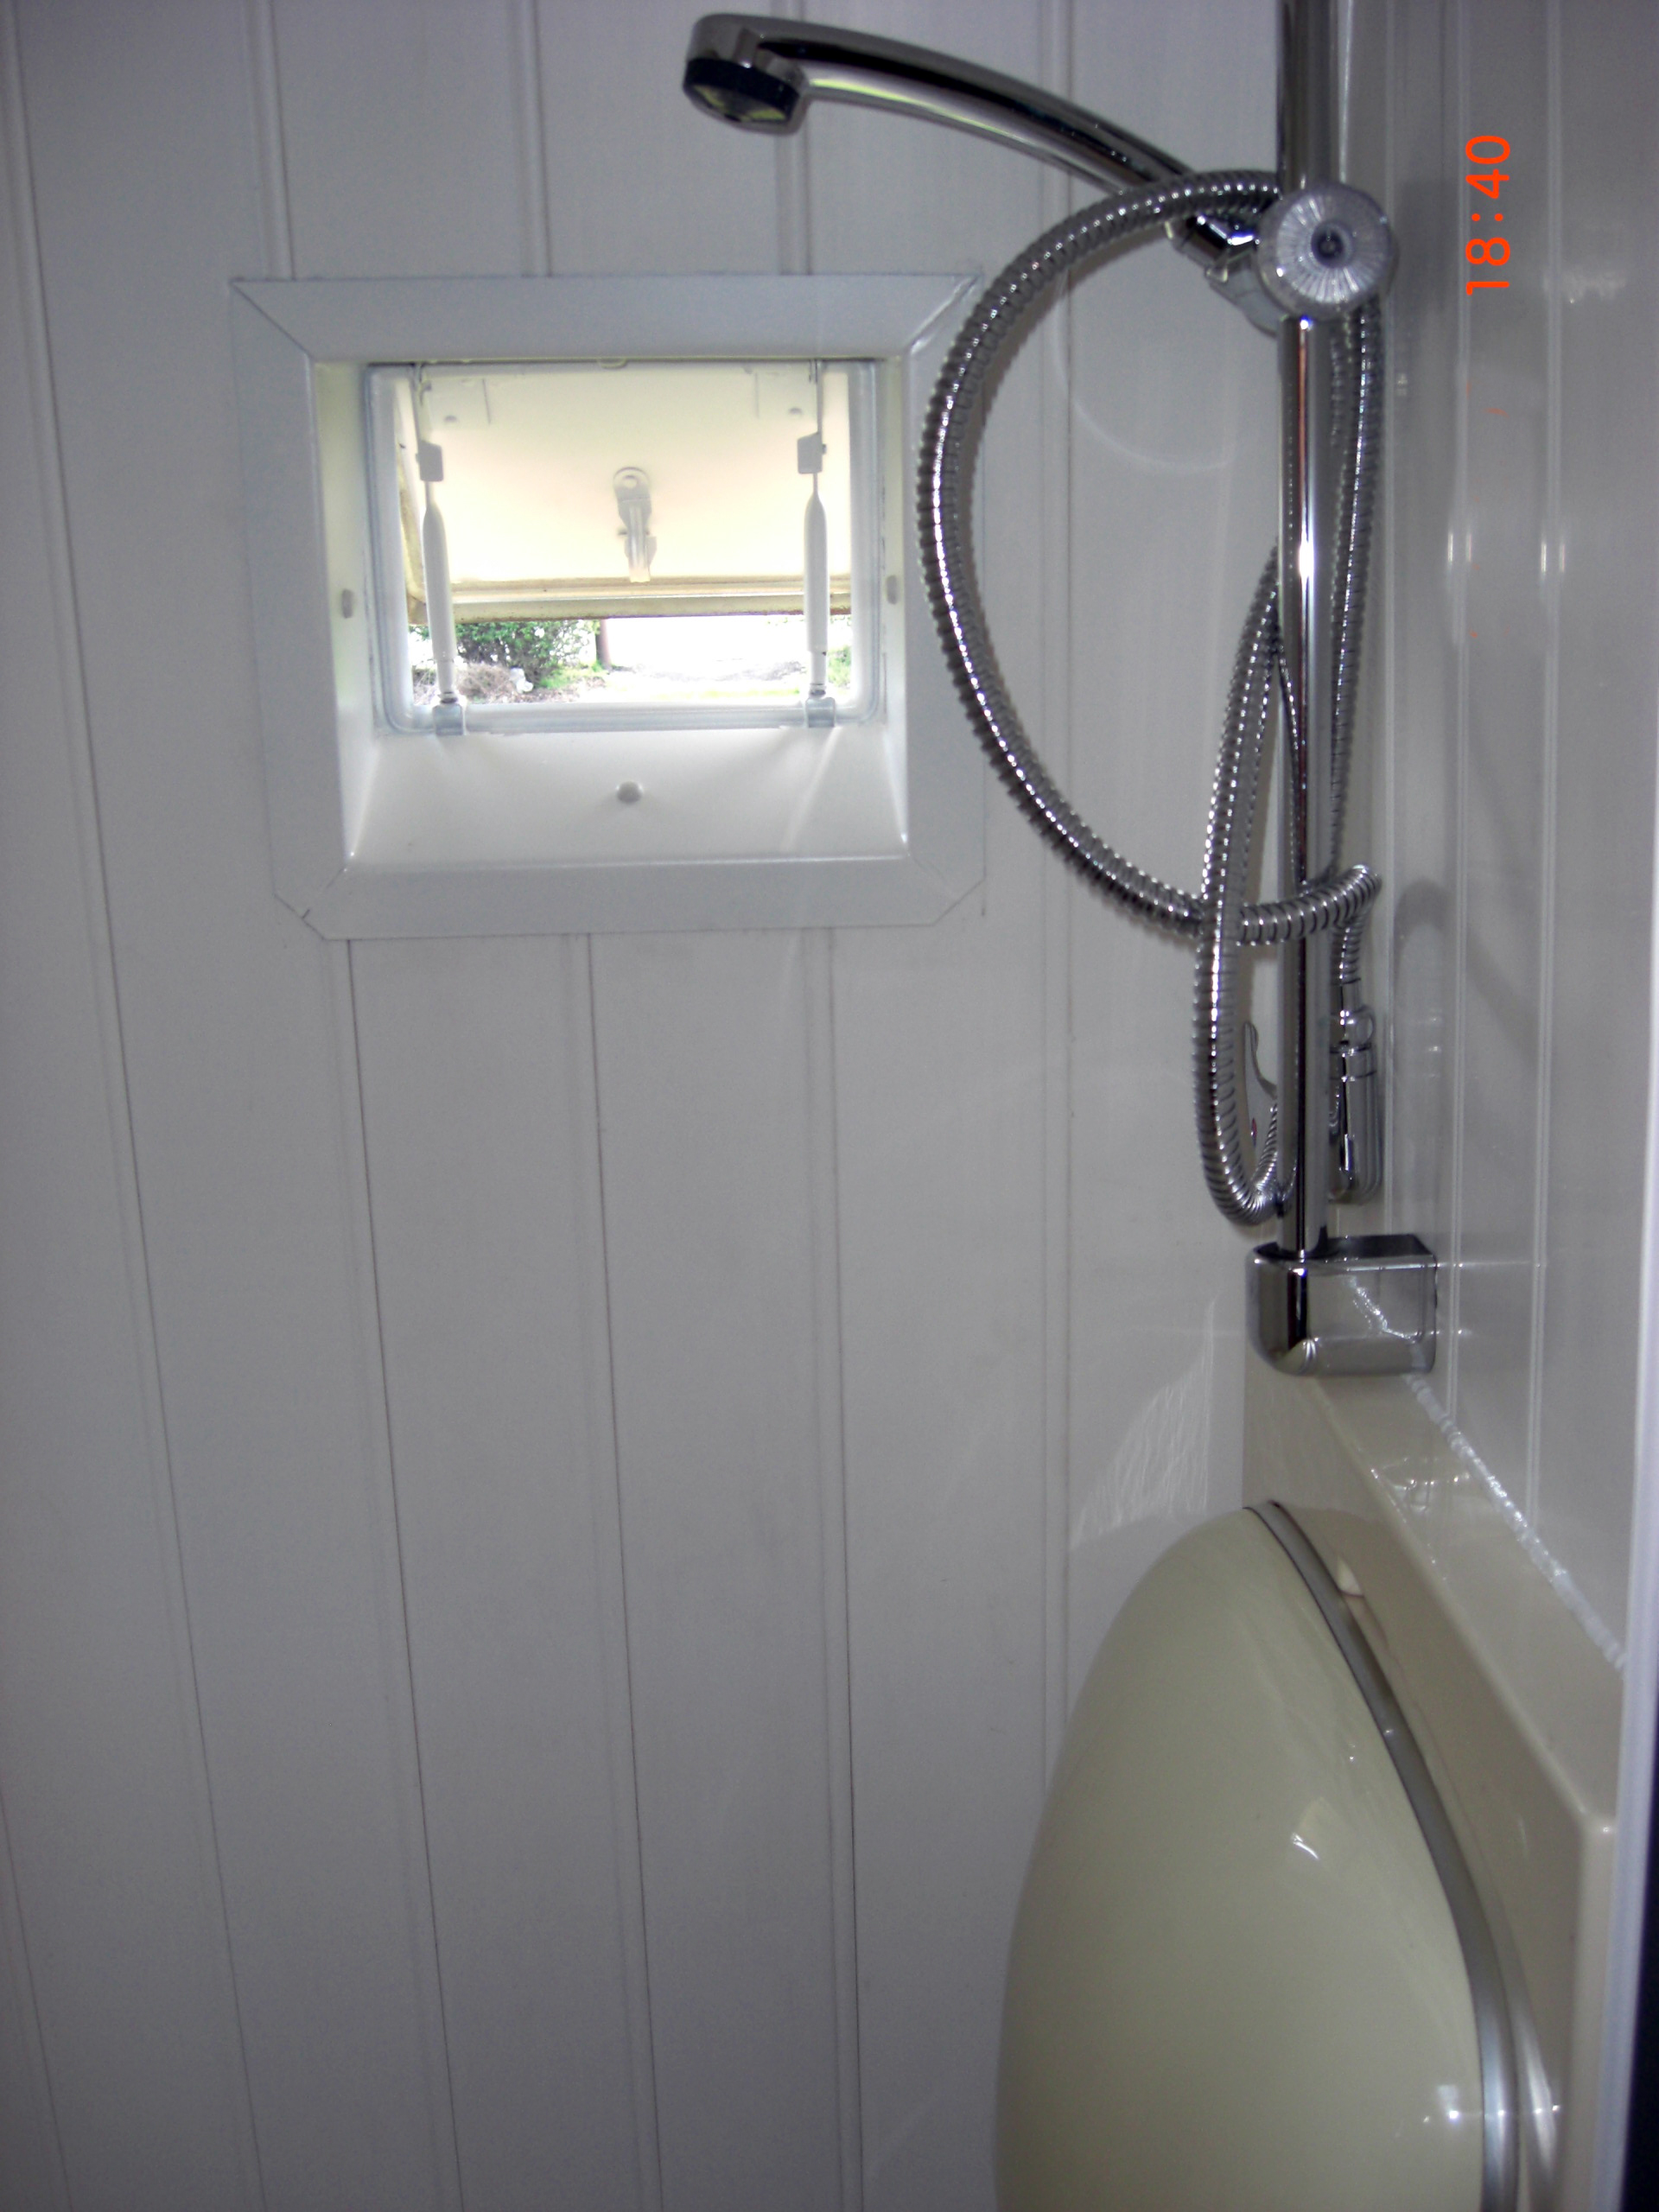 The Shower Room, With Fold Down Sink